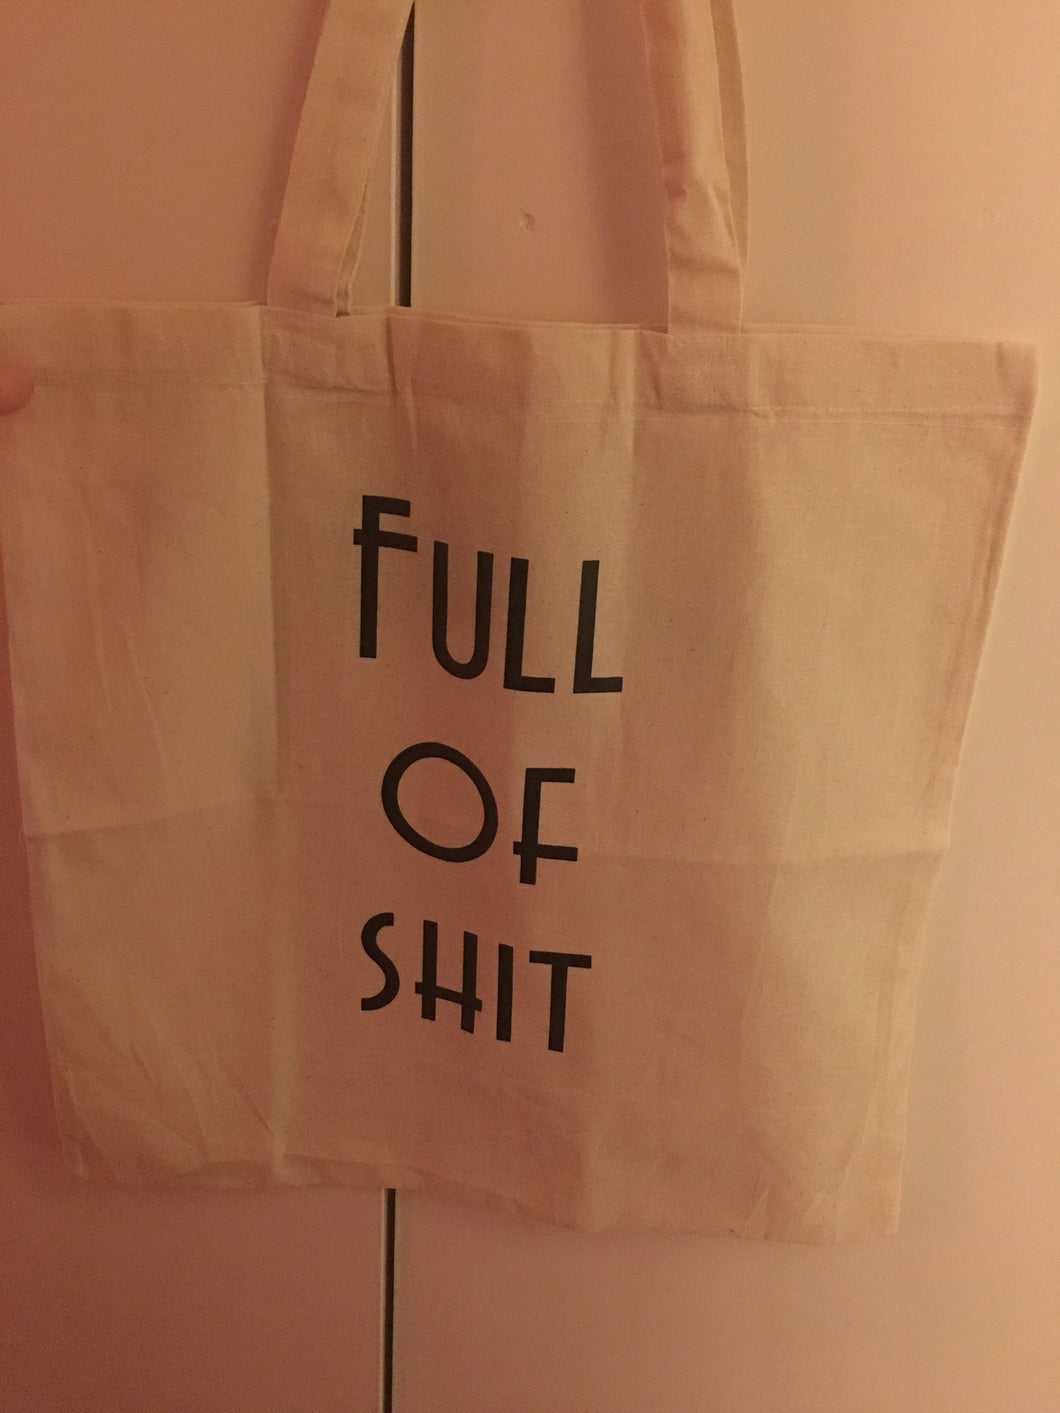 Full of sh!t bag, tote bag, canvas shopping bag